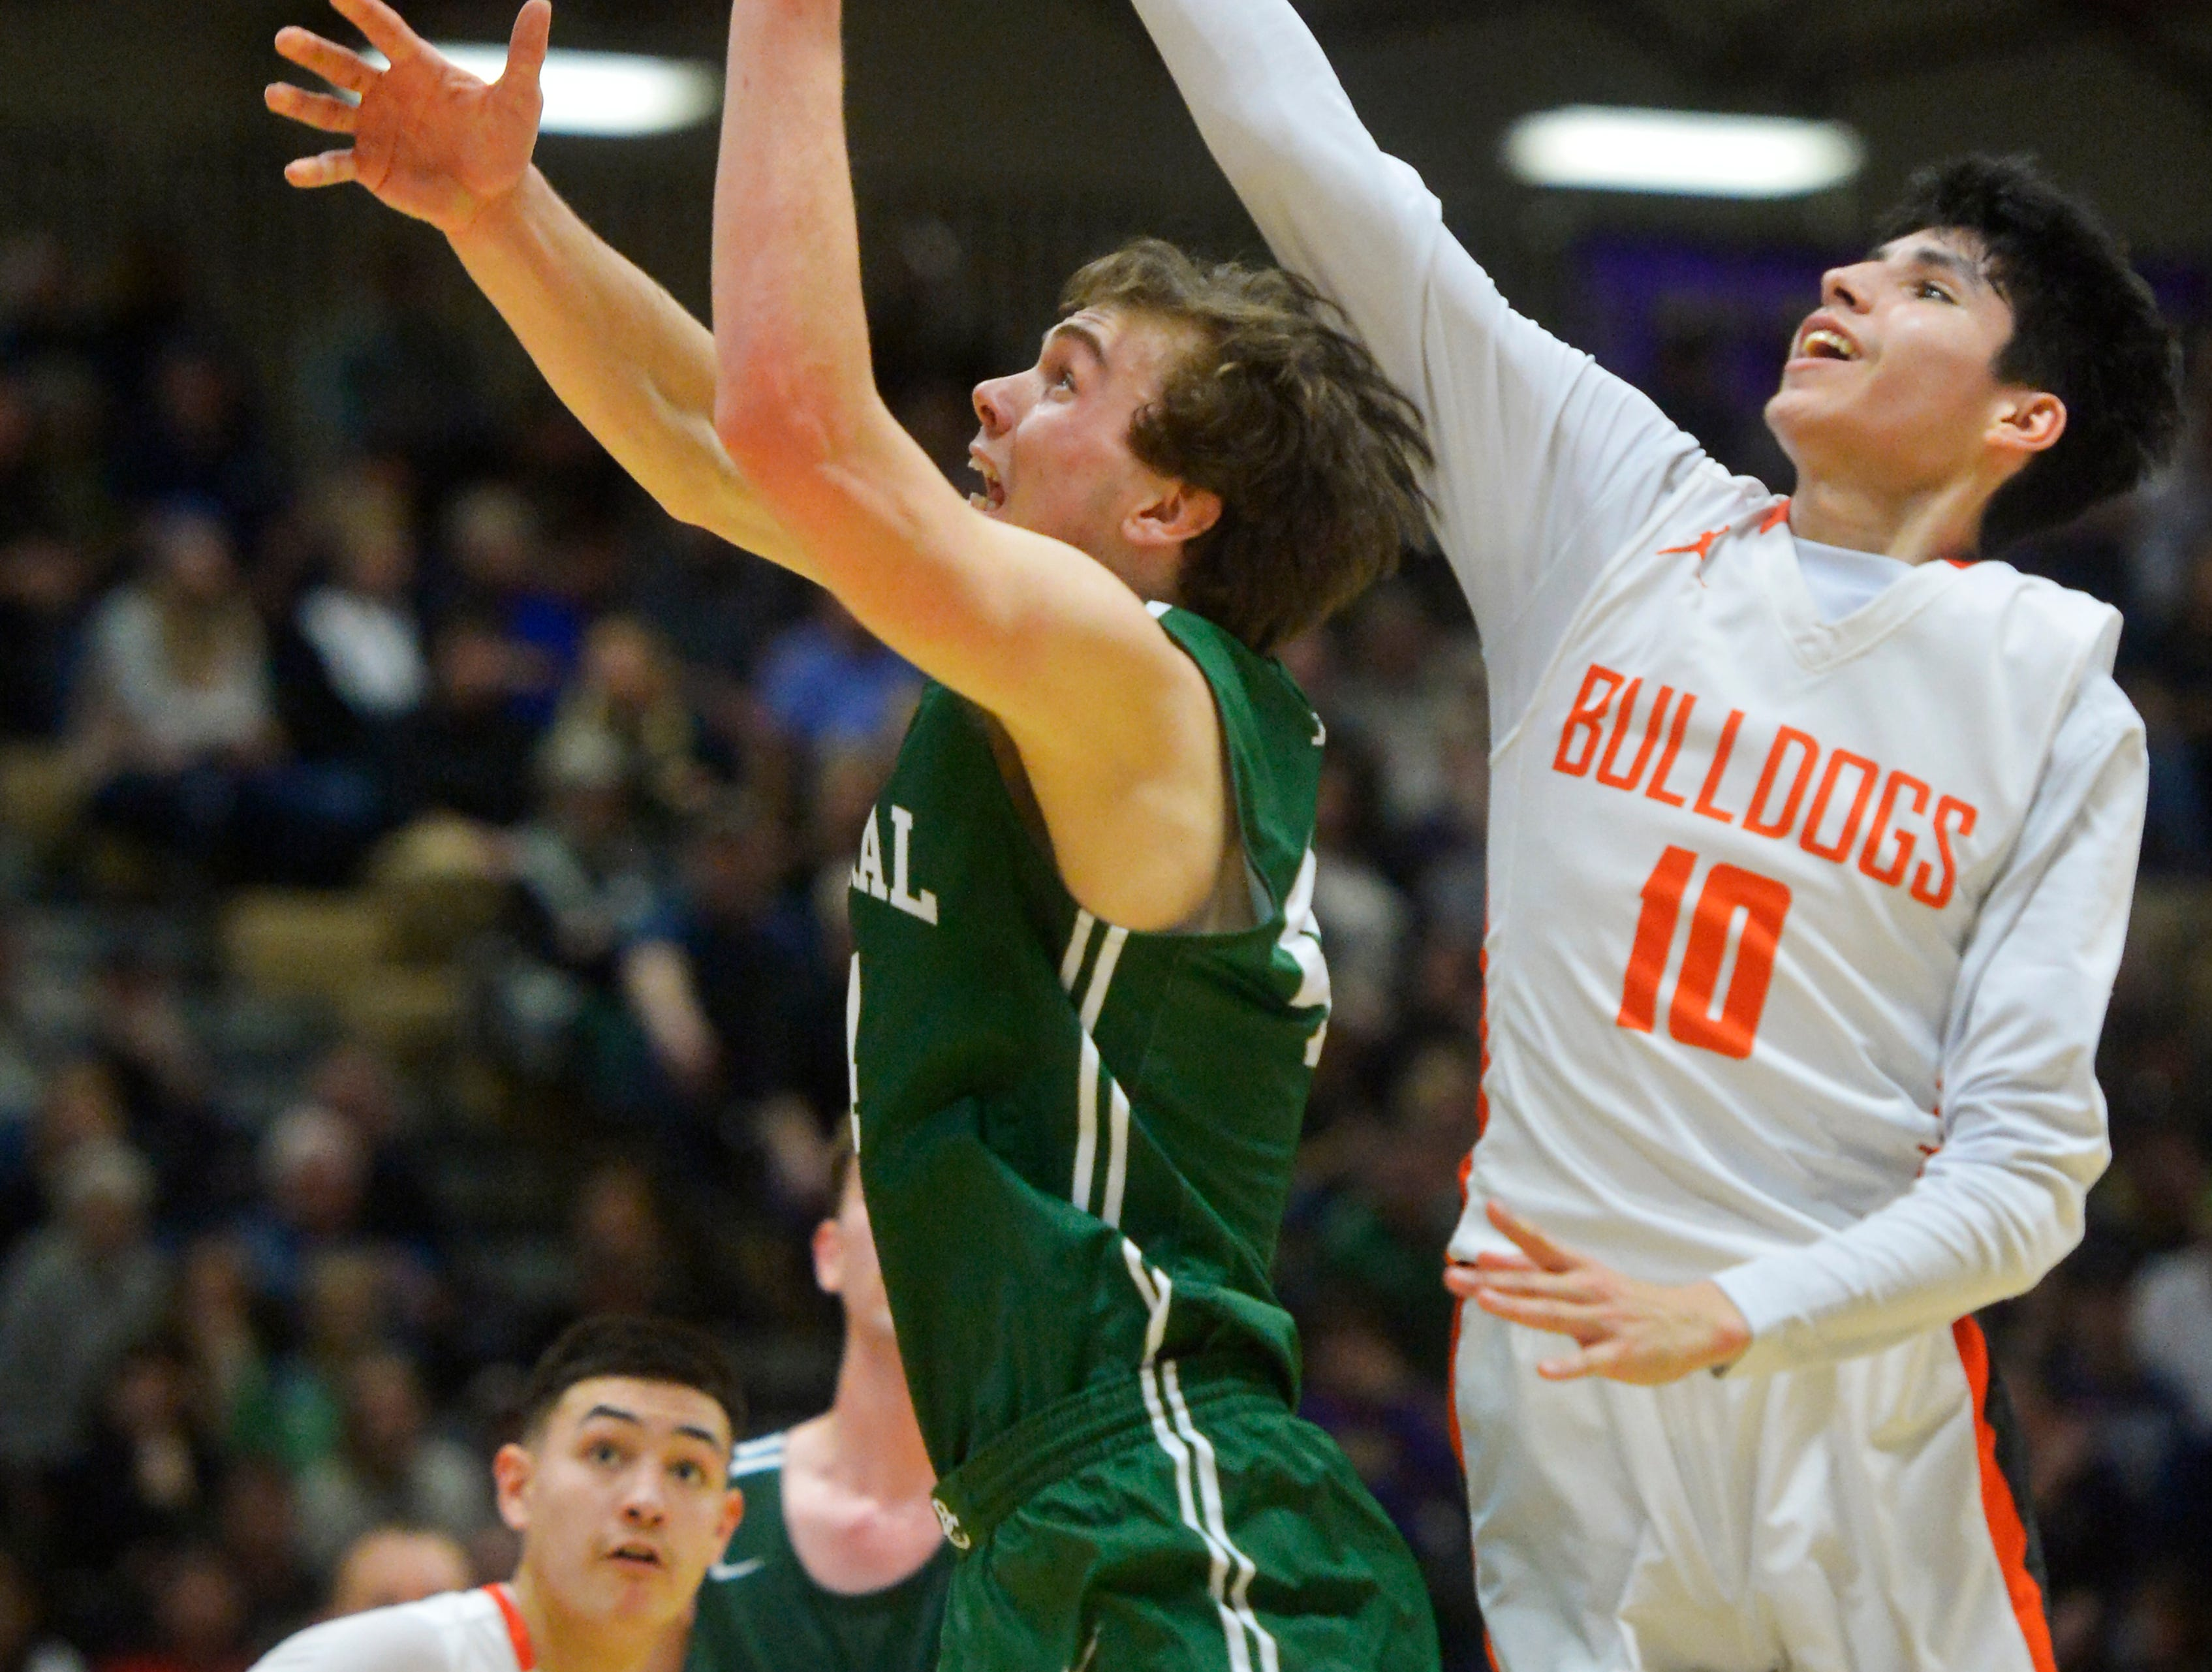 Billings Central's Joe Byorth attempts a layup as Hardin's Trae Hugs defends  in the title game of the State Class A Basketball Tournament in the Four Seasons Arena, Saturday.